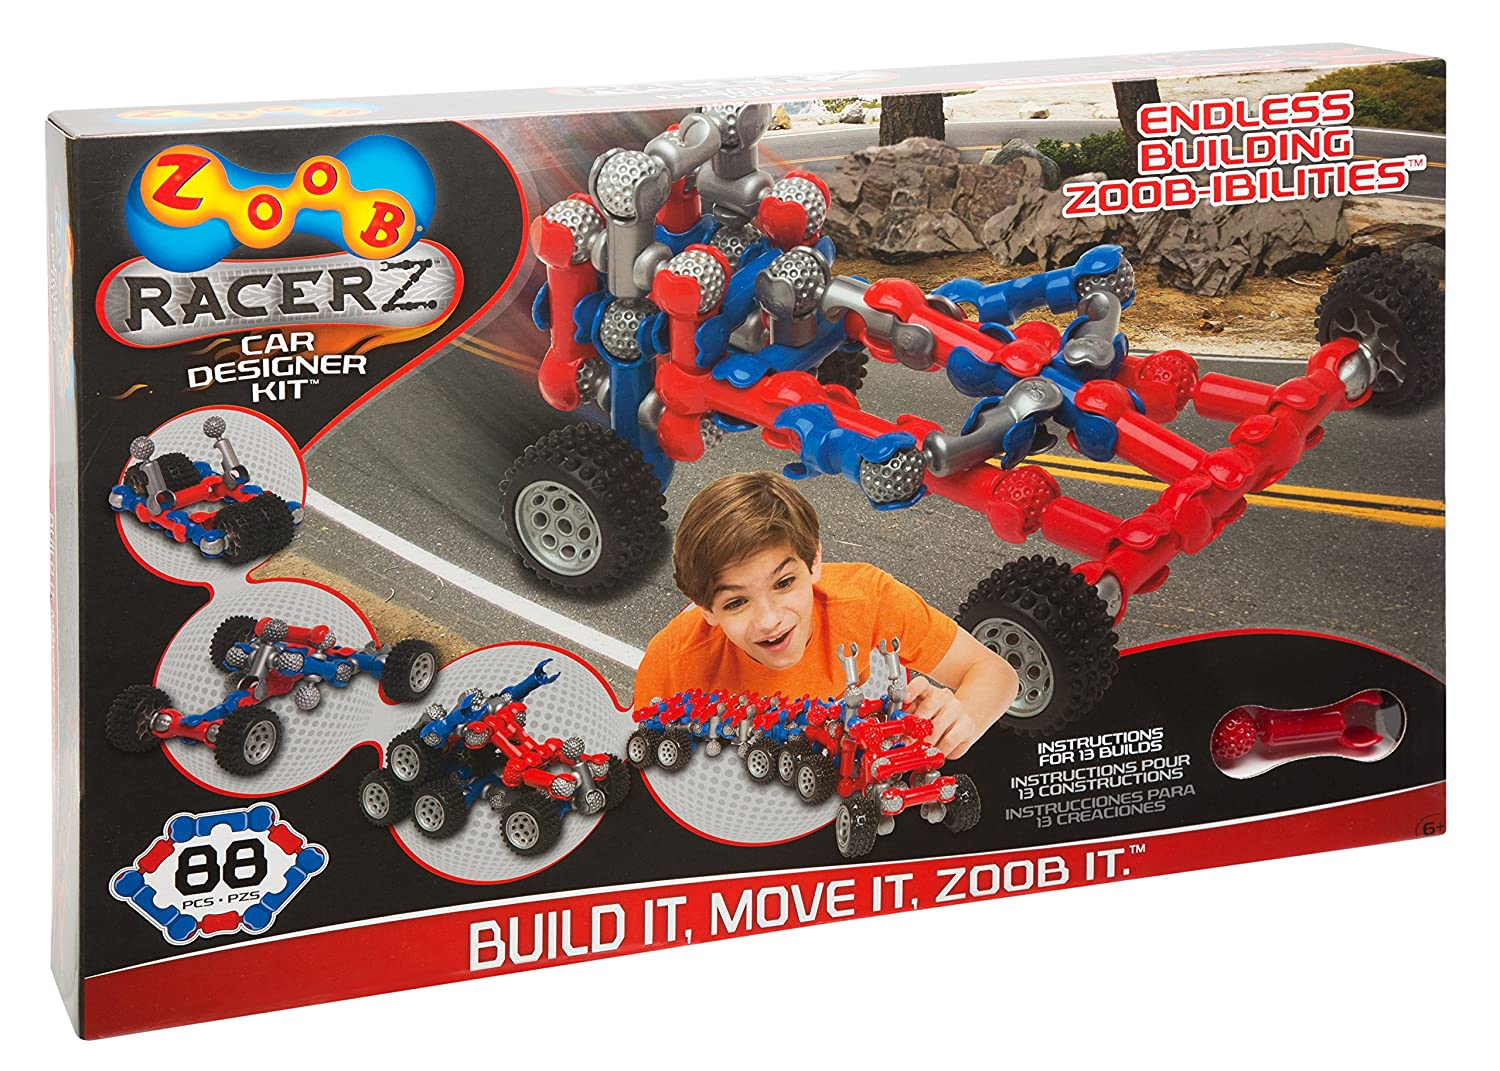 Cool Toys For Teenage Boys : Toys for big boys the best teen gift canyon